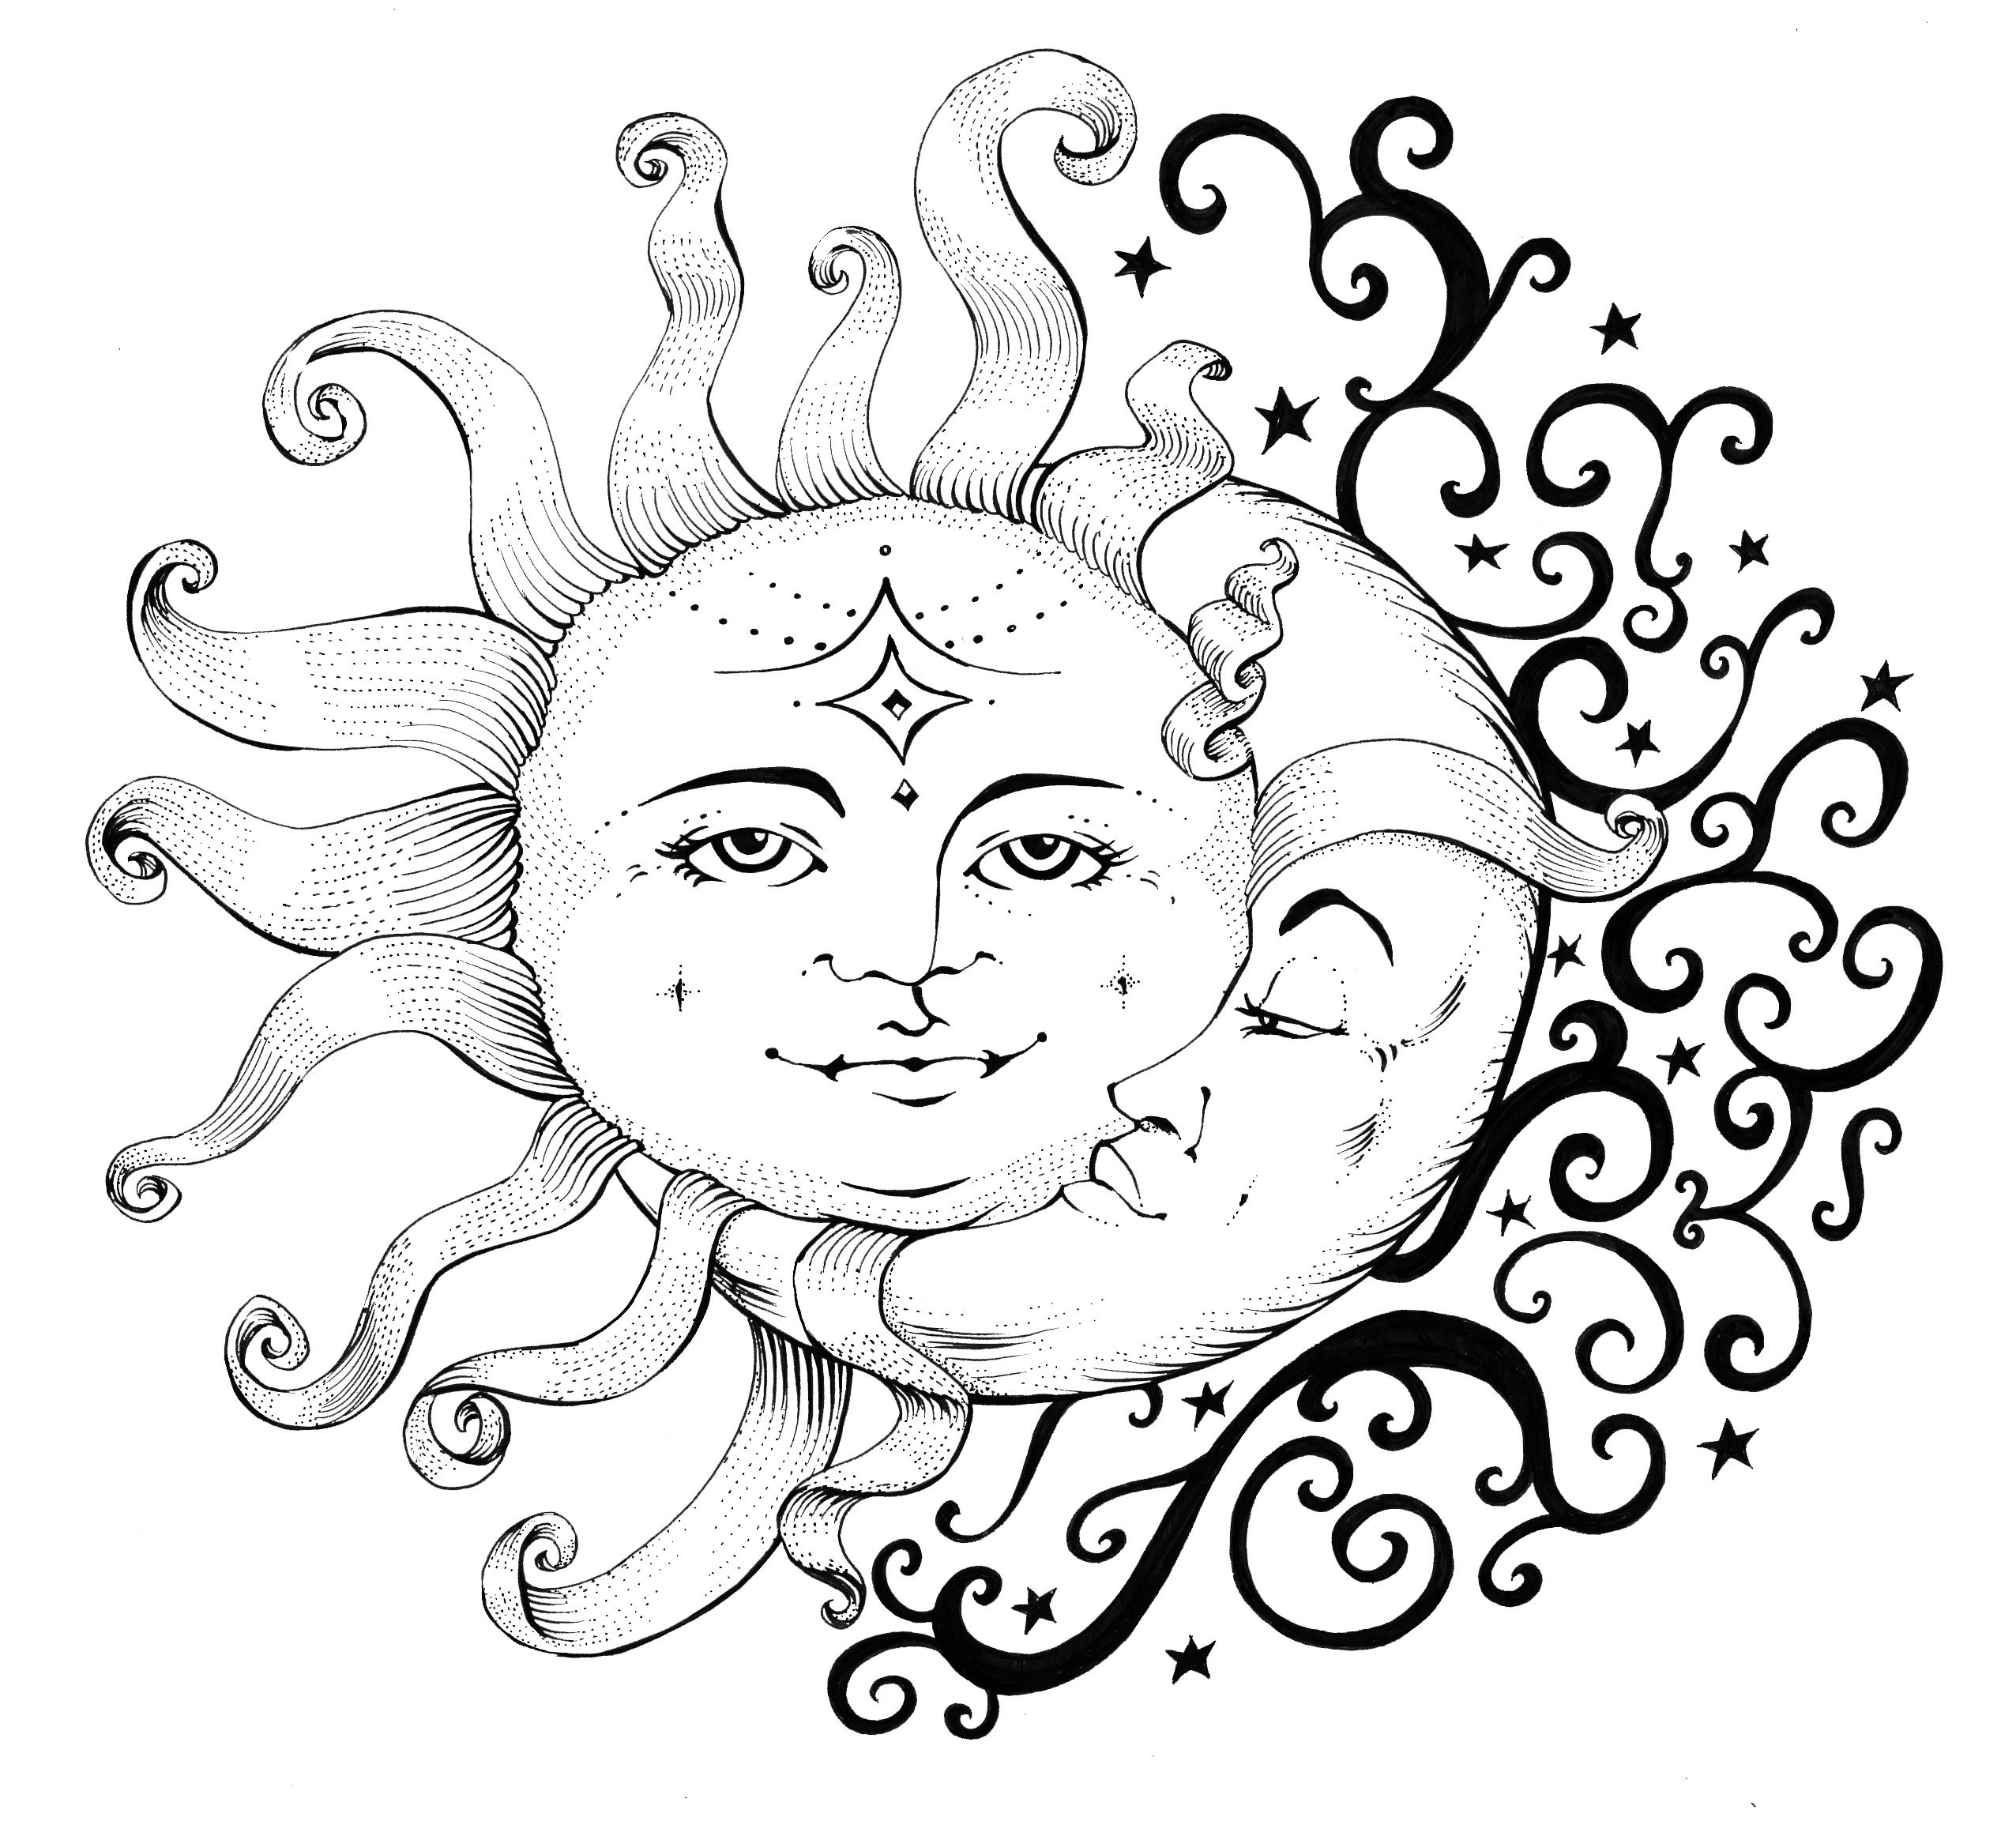 Shadiah Ink Wind Weather Drawing Celestial Sun Moon Dreaming Https Www Facebook Com Shadiahart Moon Coloring Pages Drawings Art